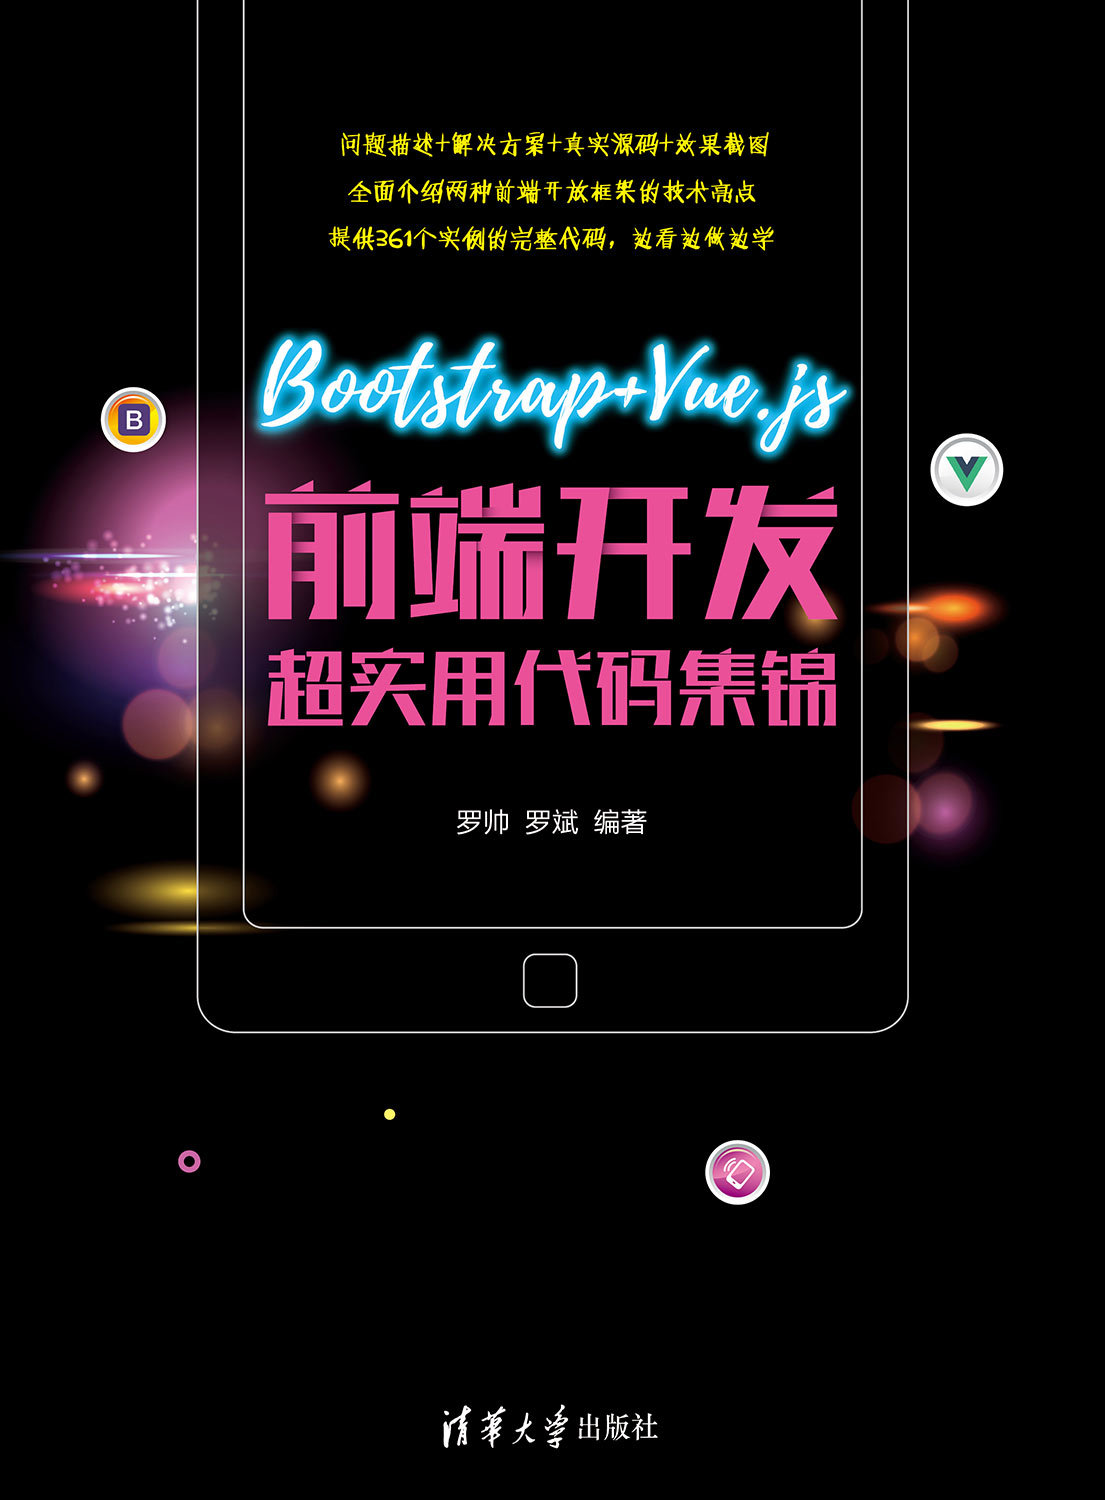 Bootstrap+Vue.js前端開發超實用代碼集錦-preview-1